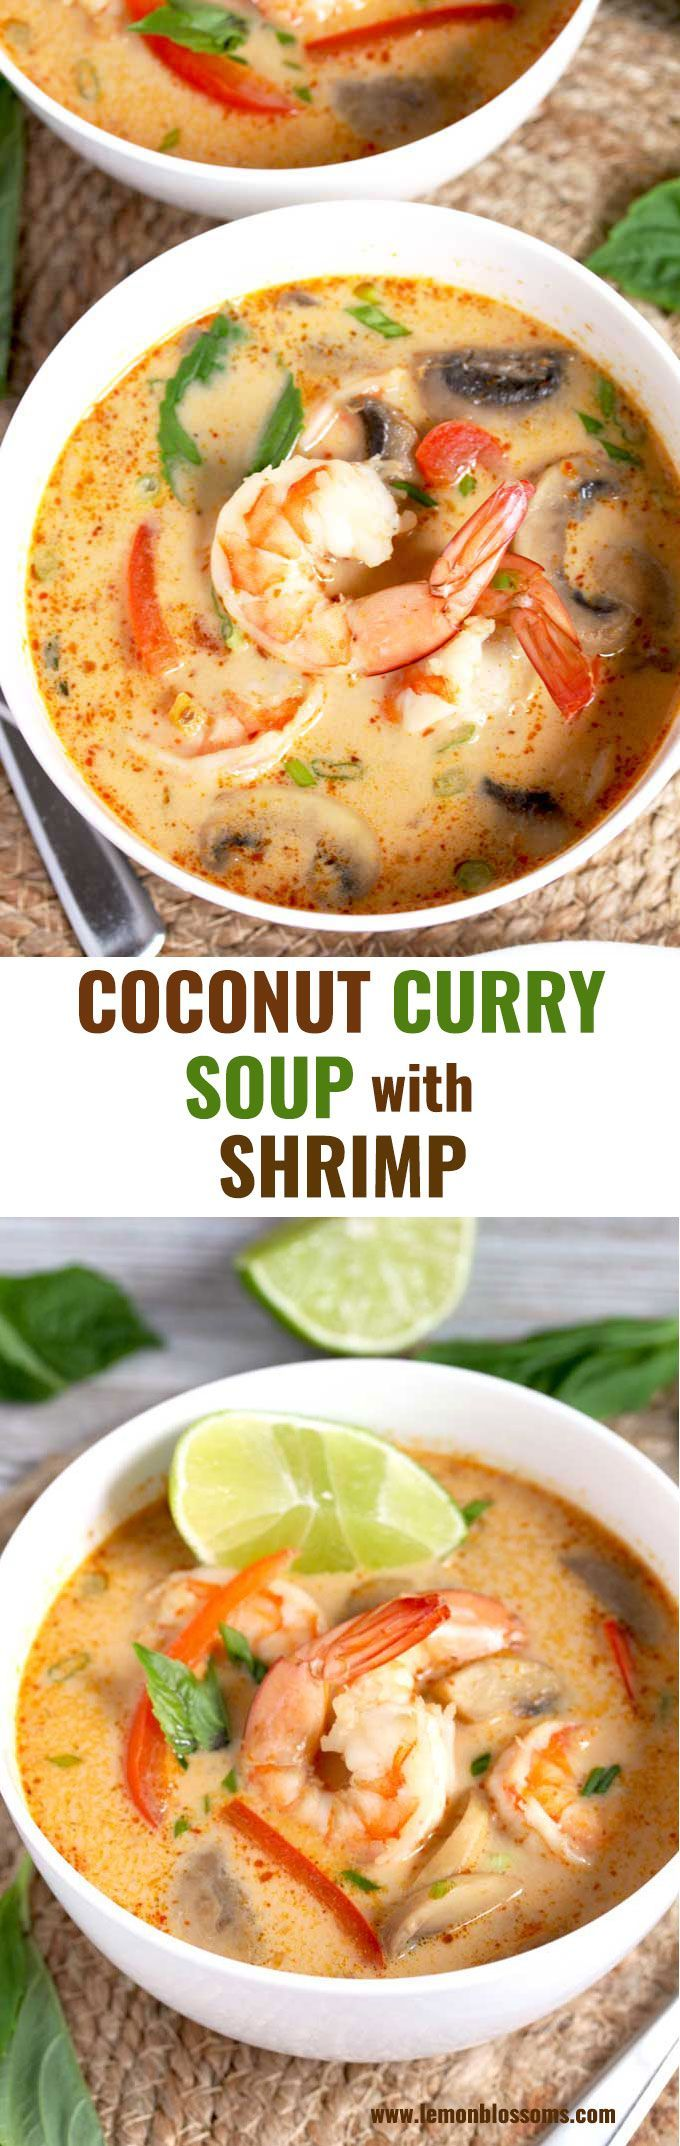 This Coconut Curry Soup is infused with ginger, garlic, red curry paste and coconut milk. Loaded with succulent shrimp and vegetables, this tasty Thai soup is easy to make and ready in under 30 minutes! #soup #Thai #easy #shrimp #comfortfood #recipe #FreakyFridayRecipe #seafooddishes